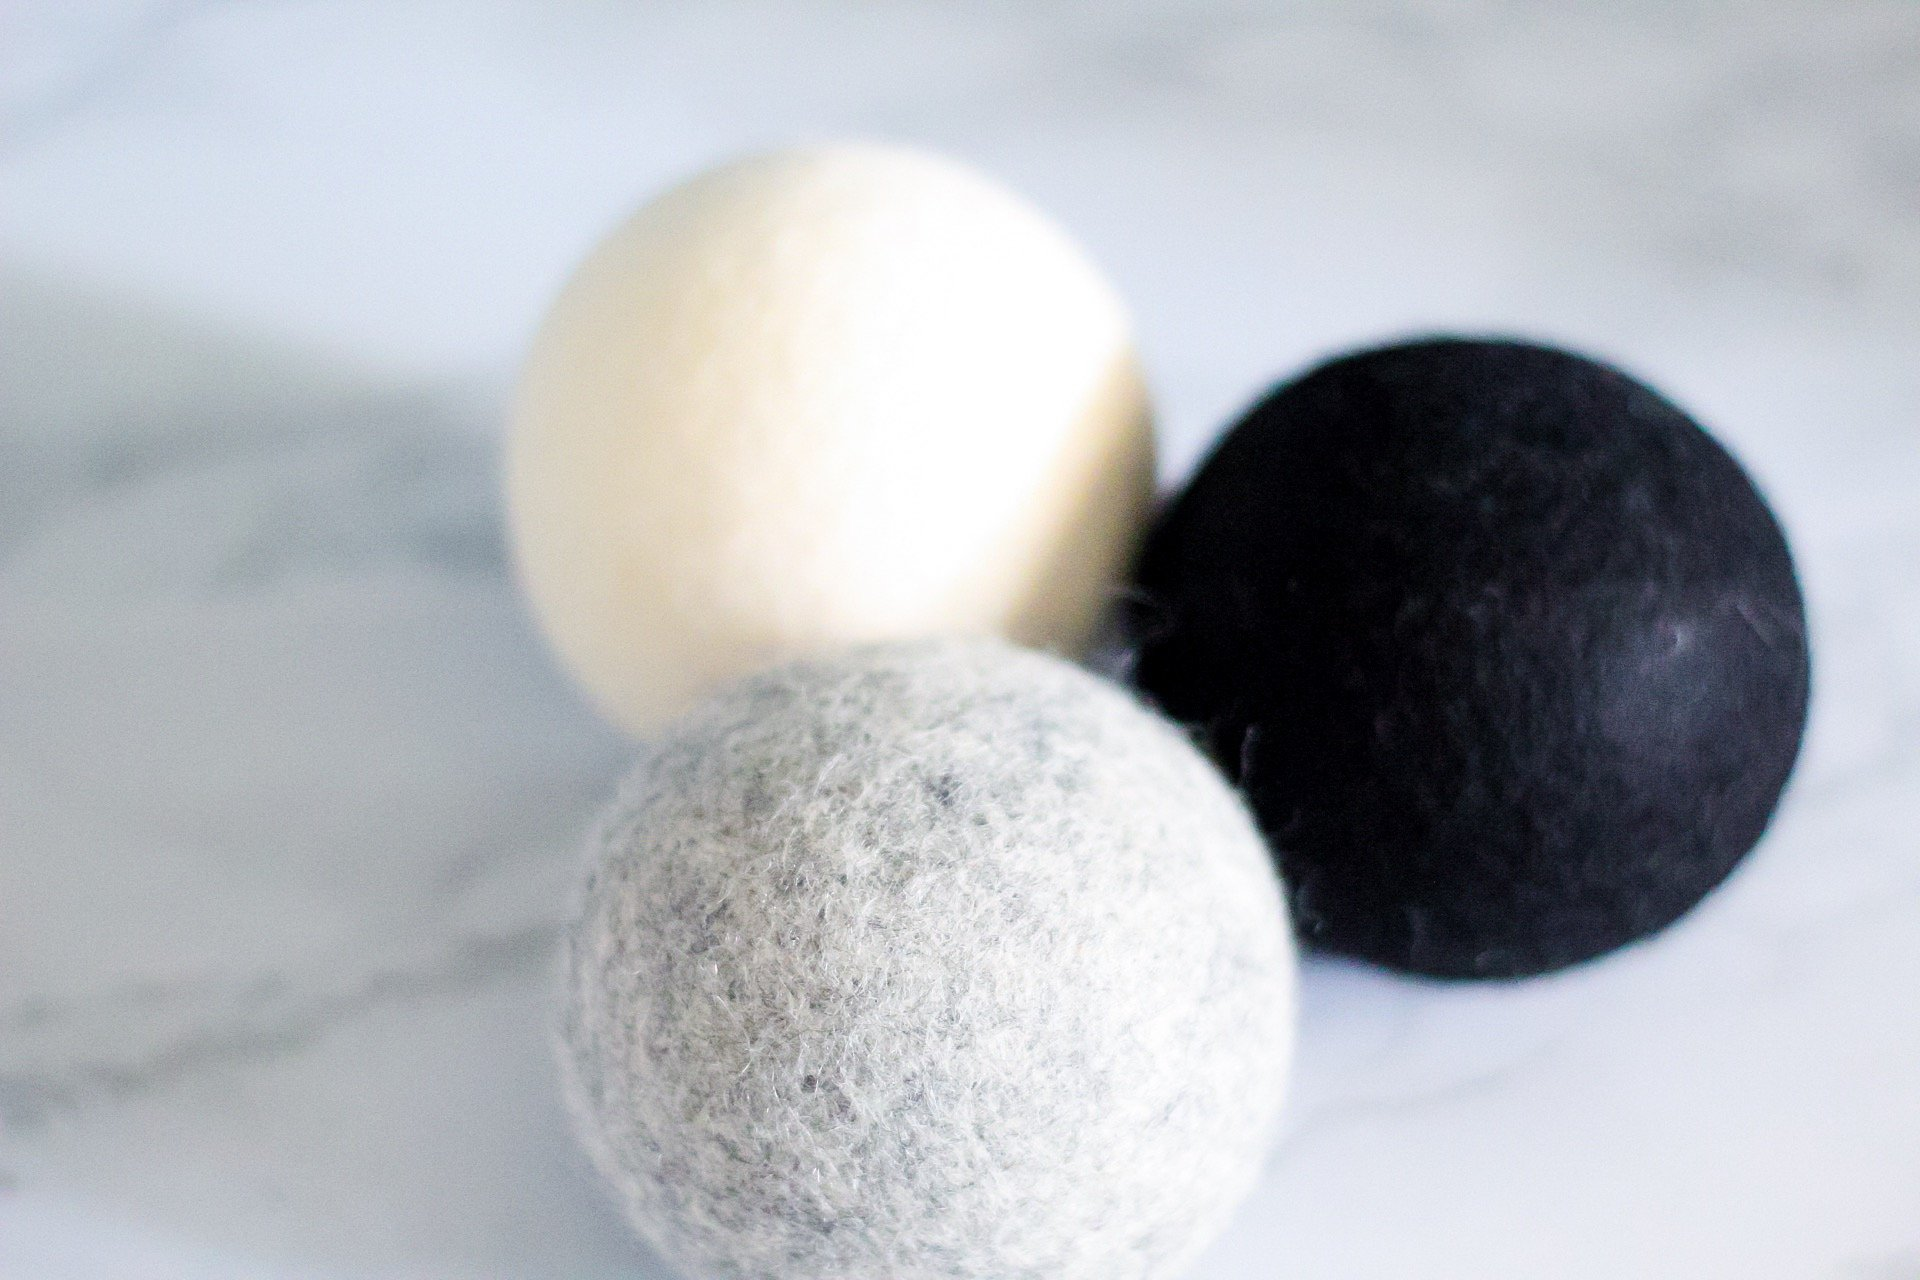 wool dryer balls from dropps closeup